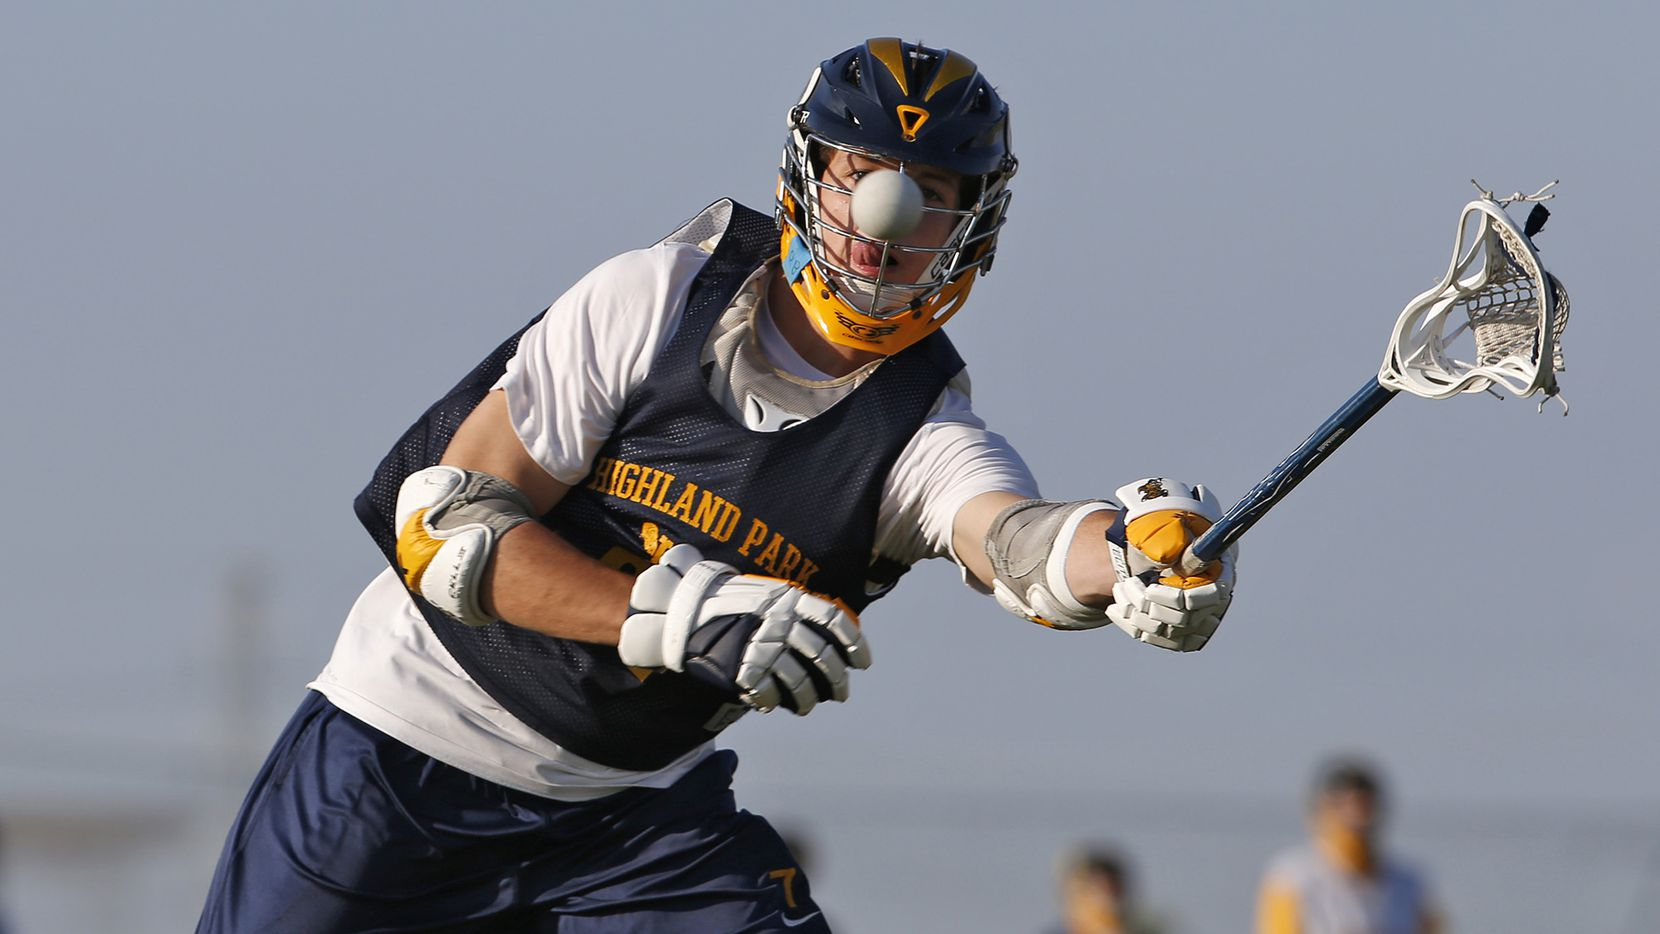 Highland Park lacrosse players work on drills during practice at MoneyGram Park in Dallas on May 11.